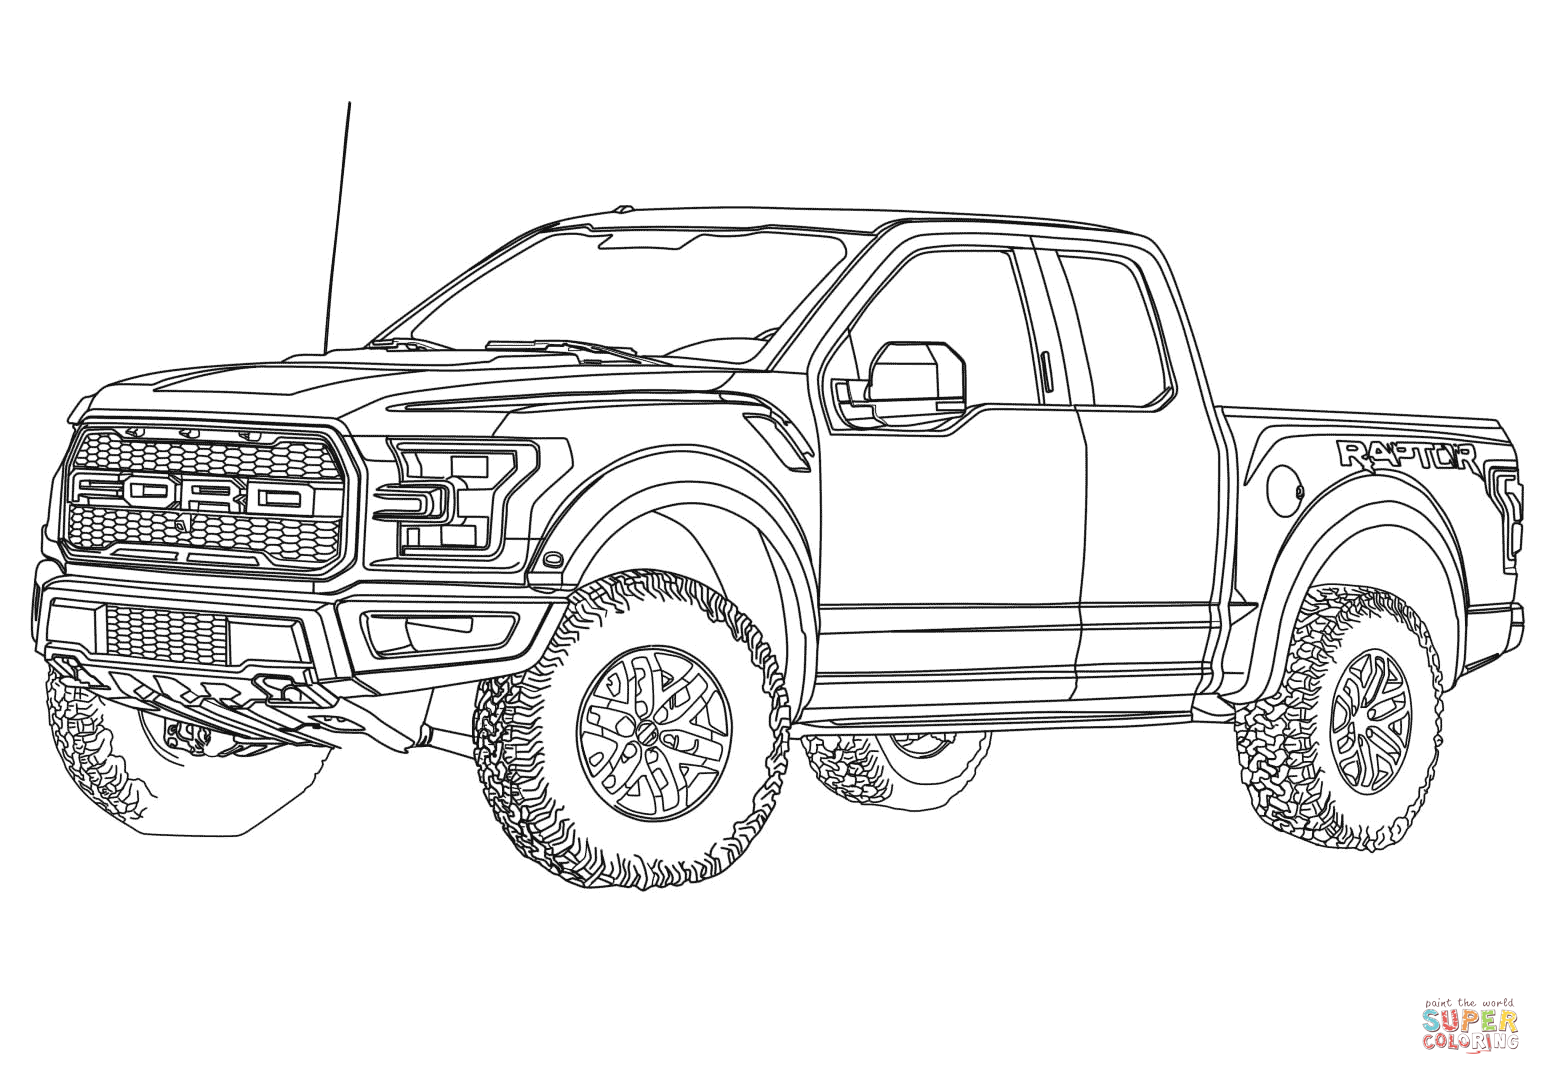 Related Image Truck Coloring Pages Ford Raptor Truck Ford Raptor